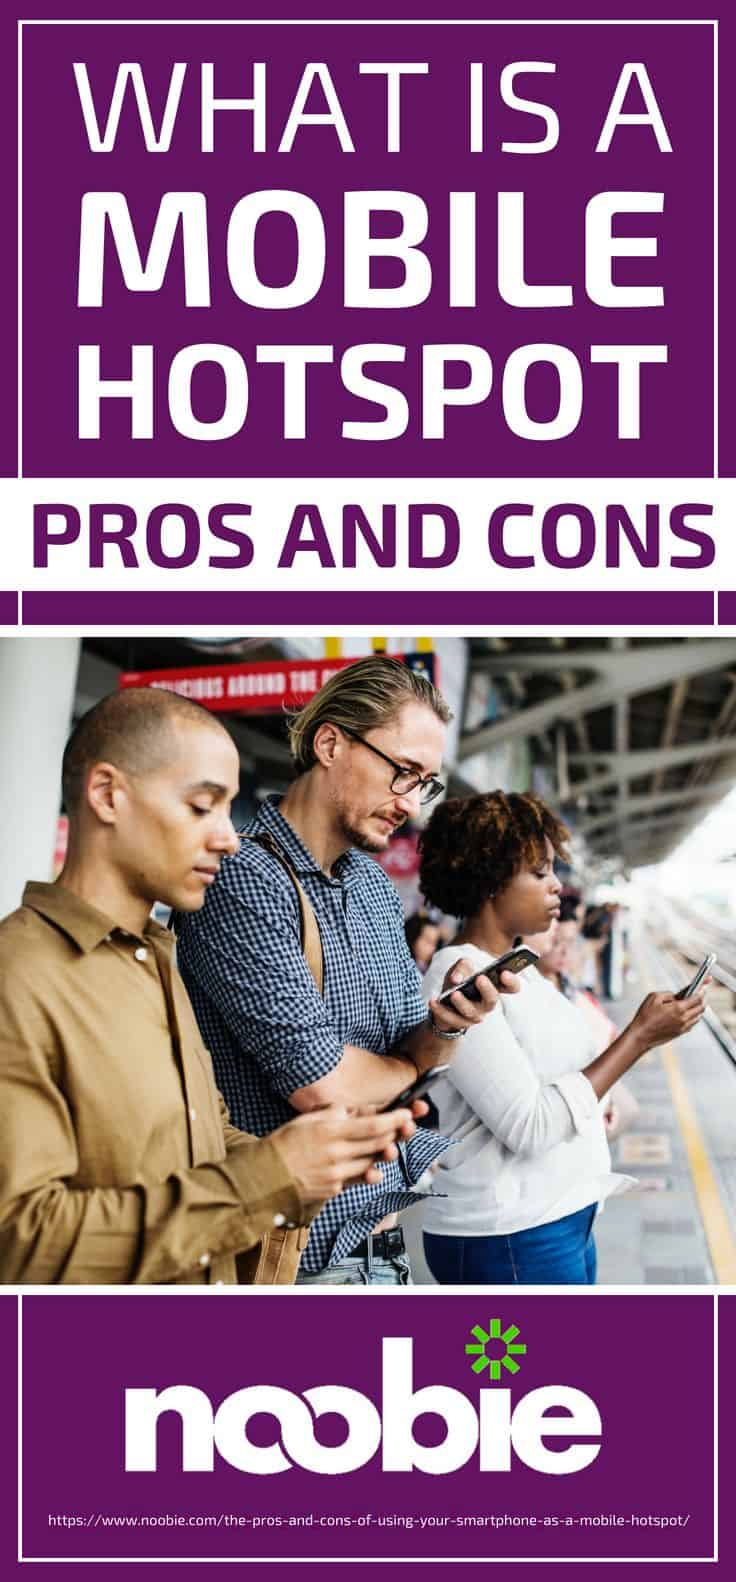 Pinterest Placard | What Is A Mobile Hotspot? The Pros And Cons Unveiled